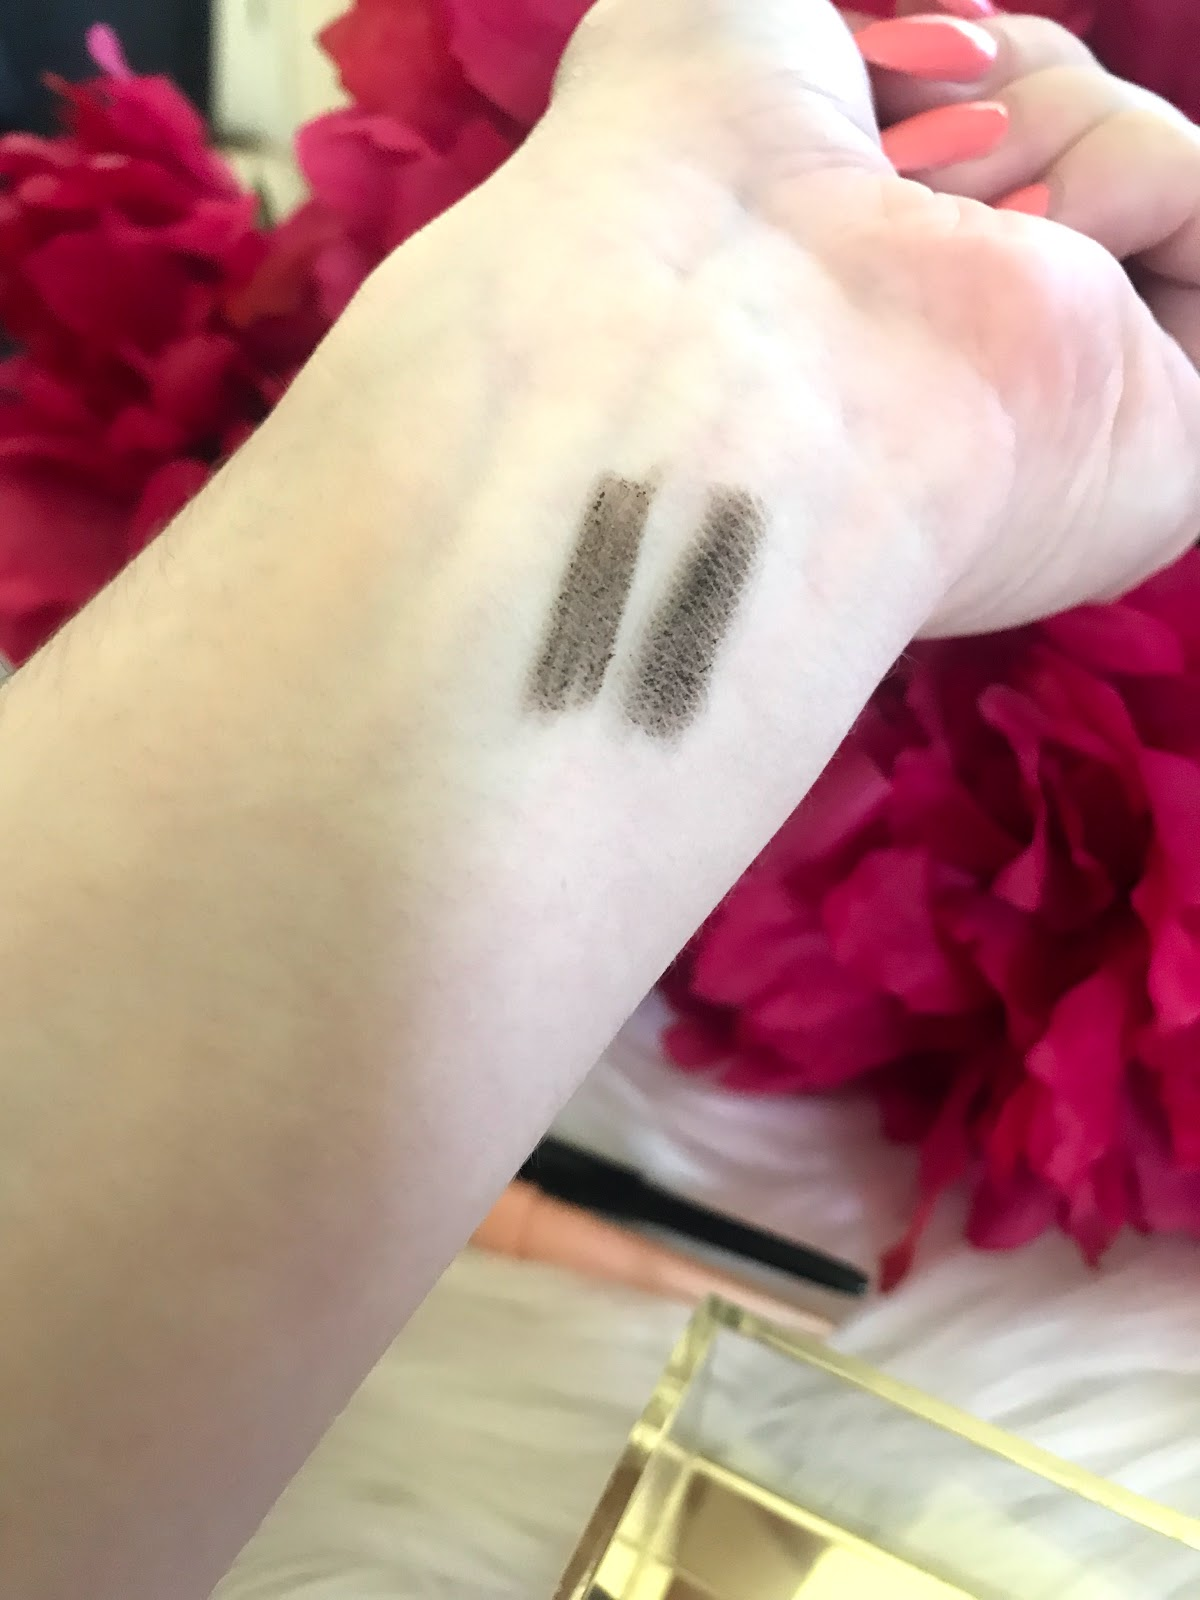 drugstore mechanical brow pencils